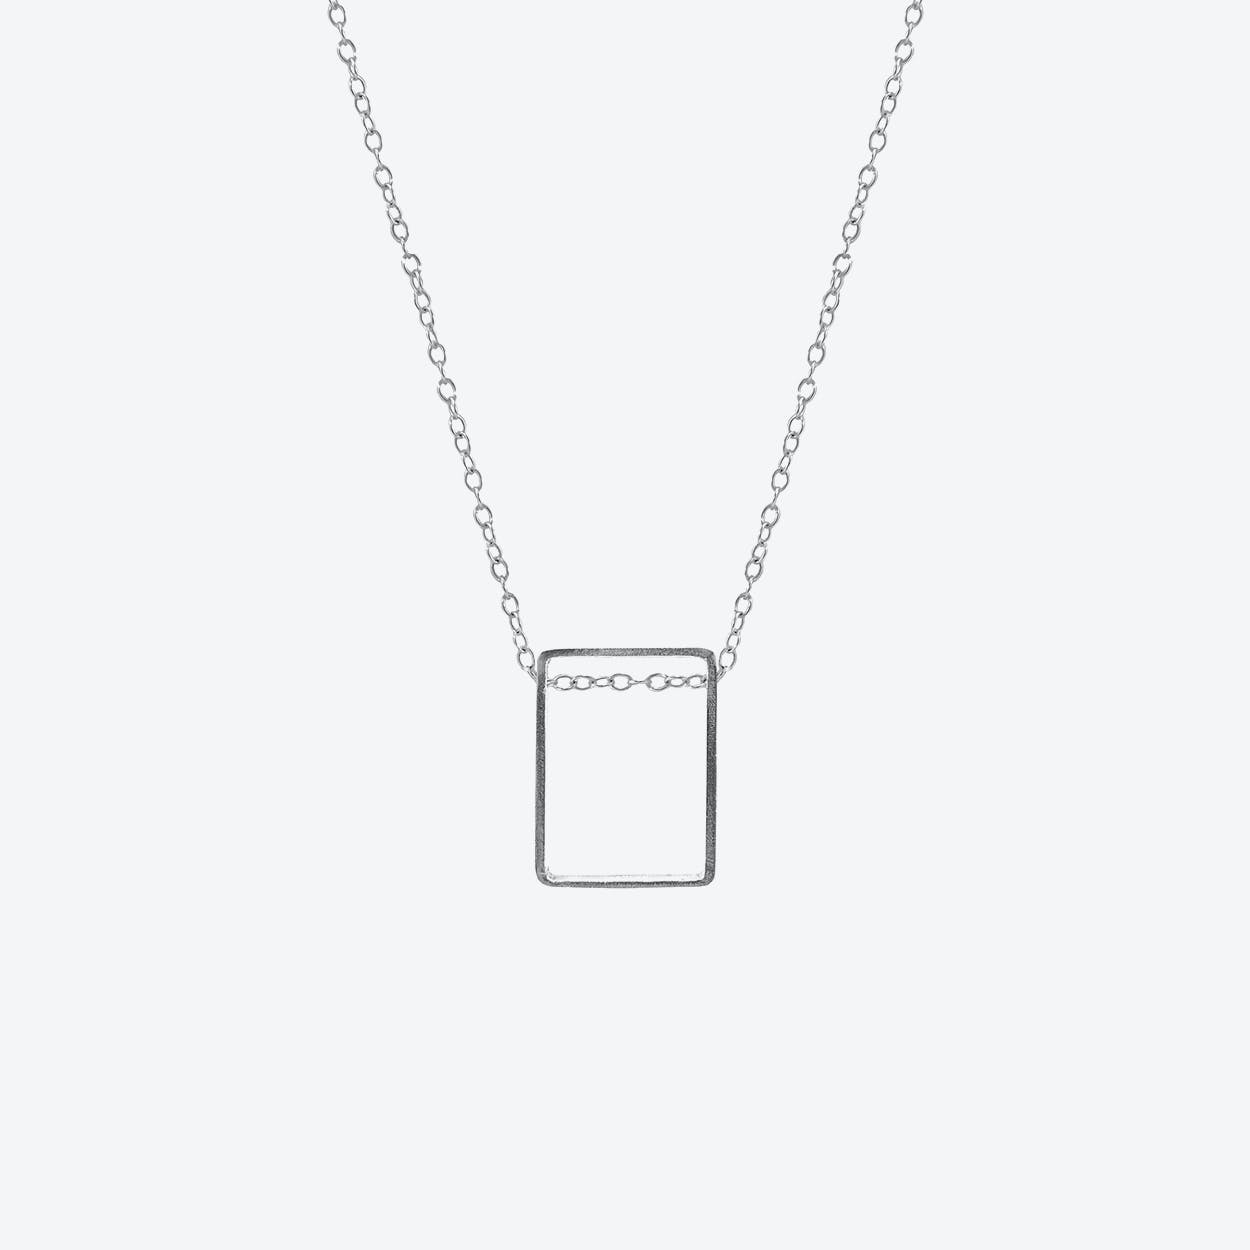 Bowen Box Mini Geometric Silver Necklace Pendant